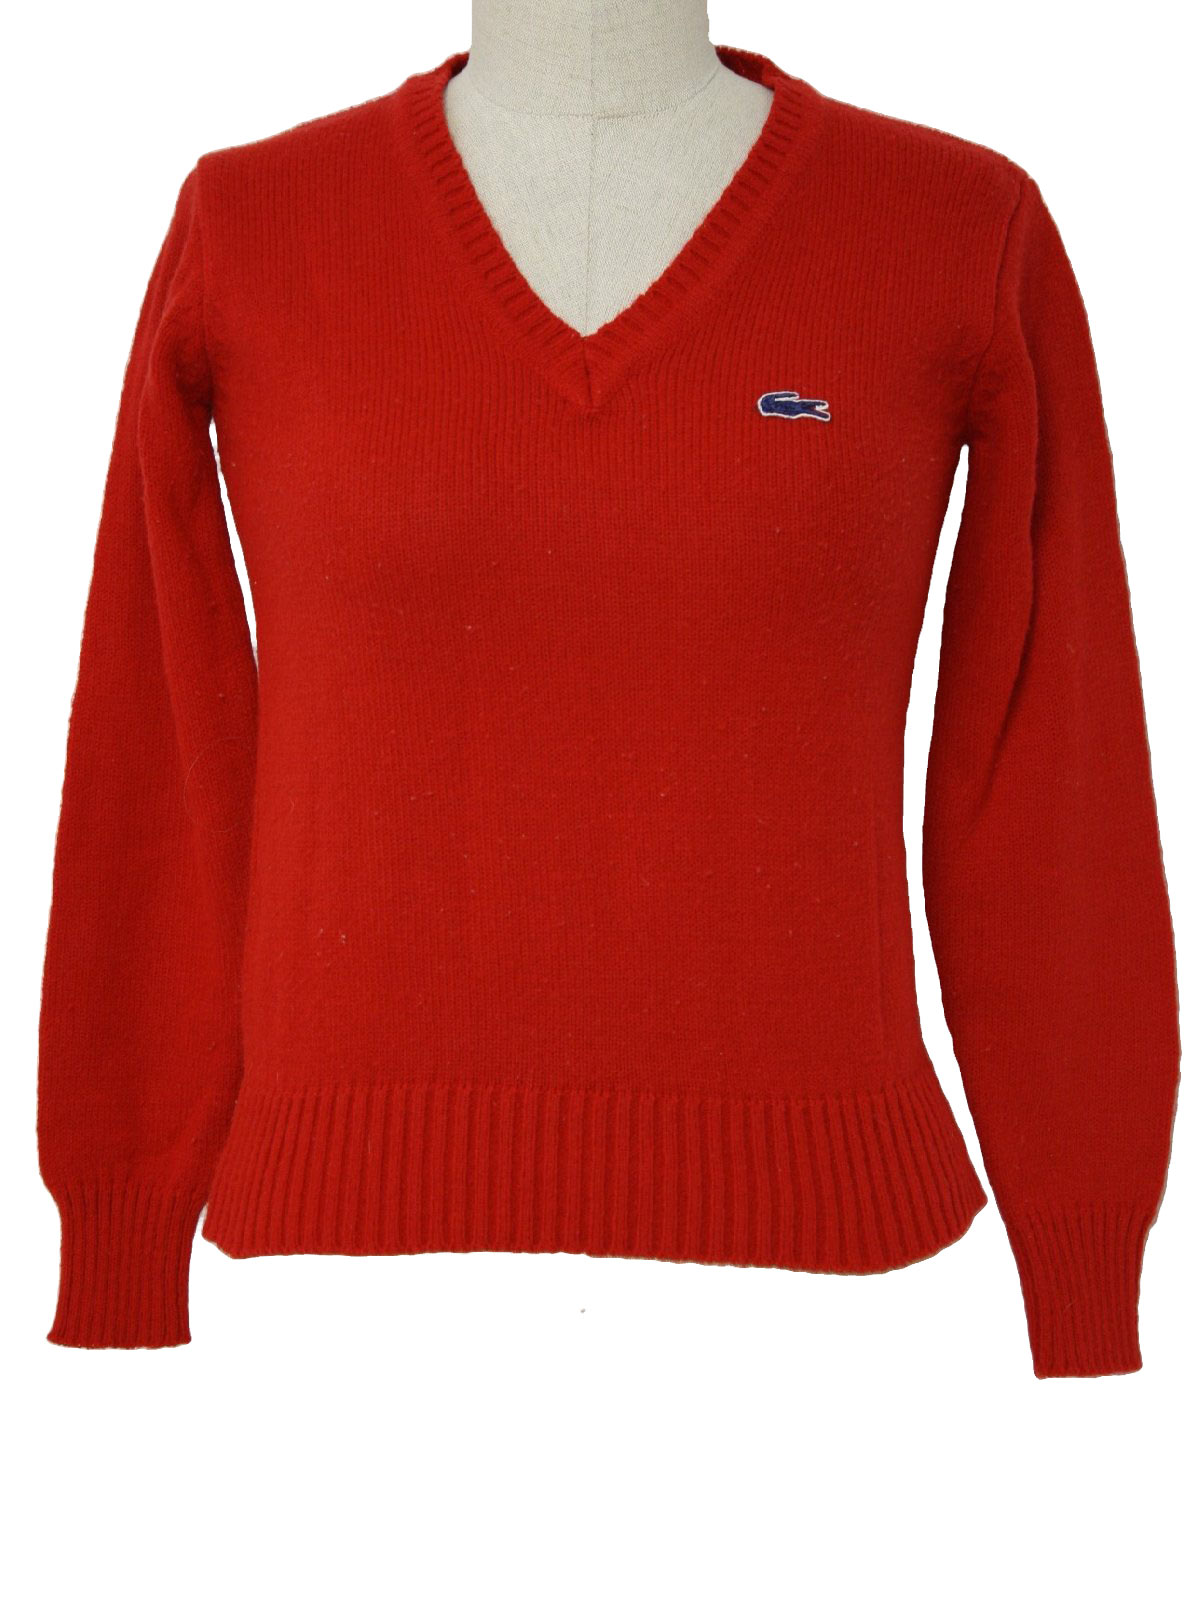 Eighties Vintage Sweater: 80s -Izod- Womens red acrylic pullover ...